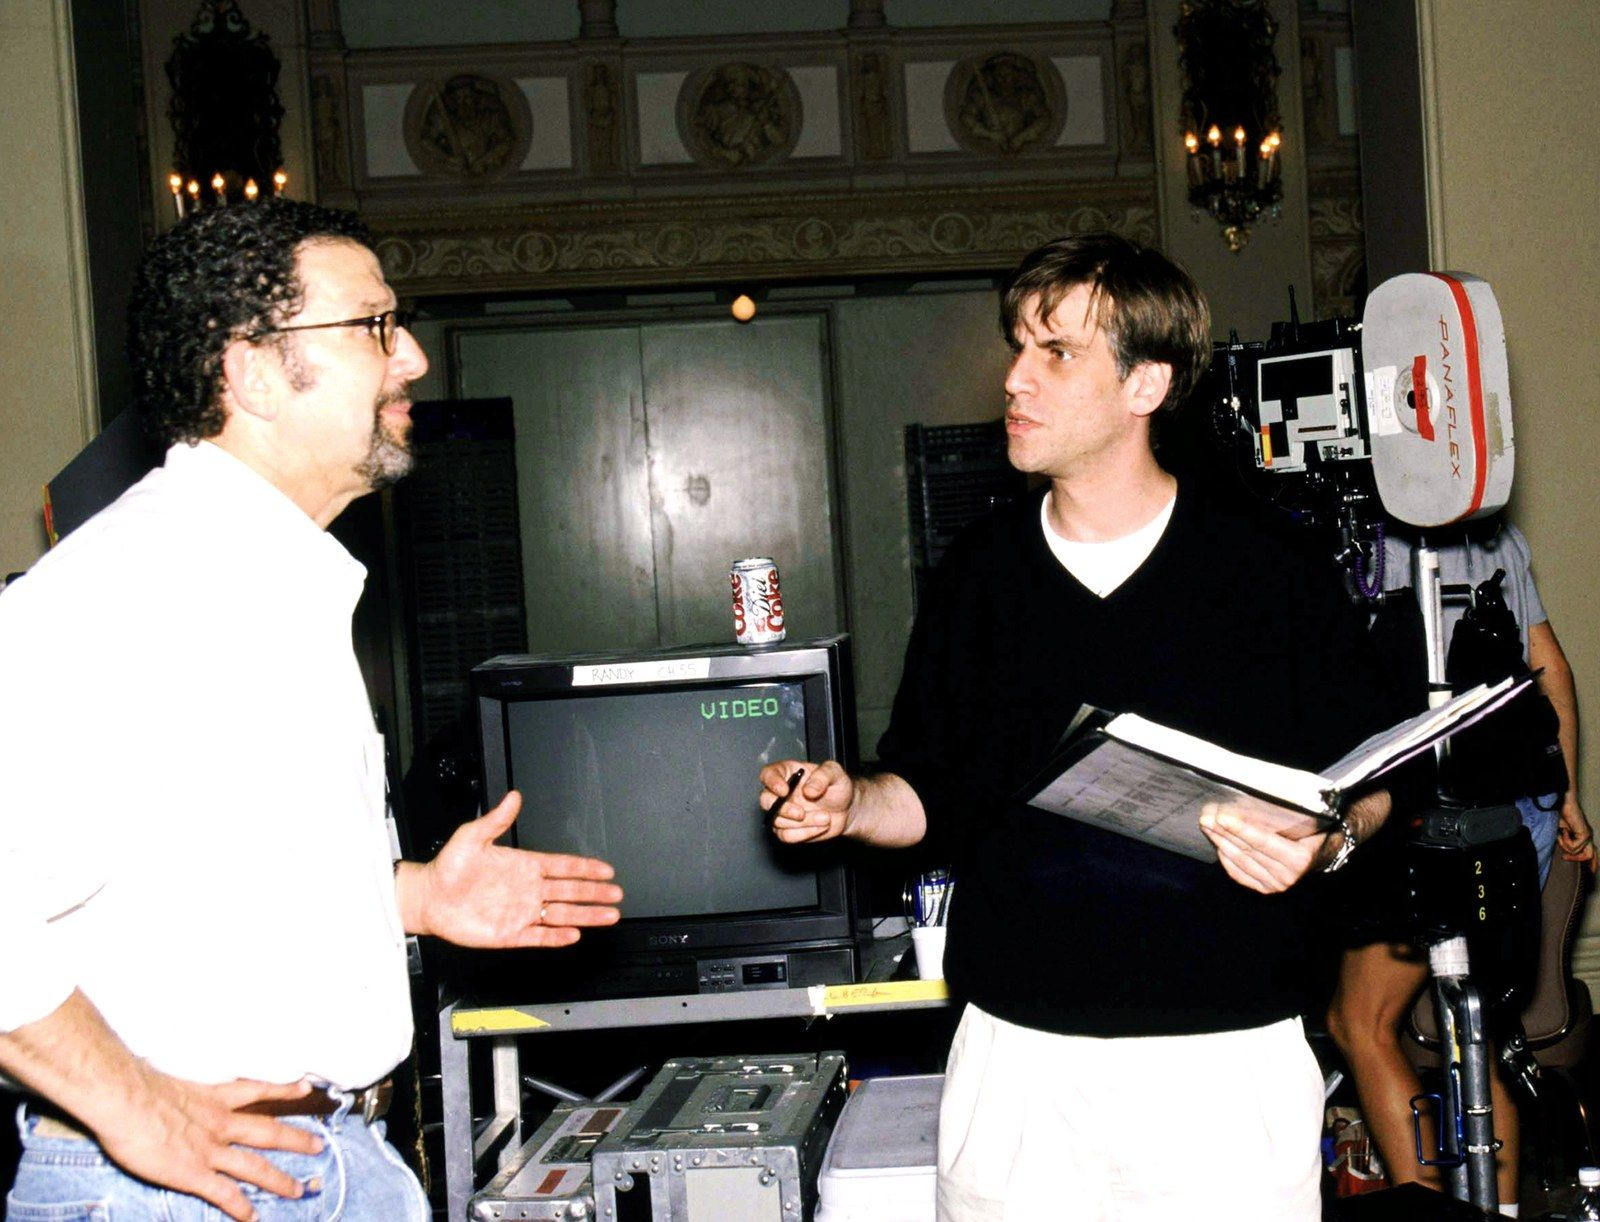 Aaron Sorkin right with director Thomas Schlamme on set.